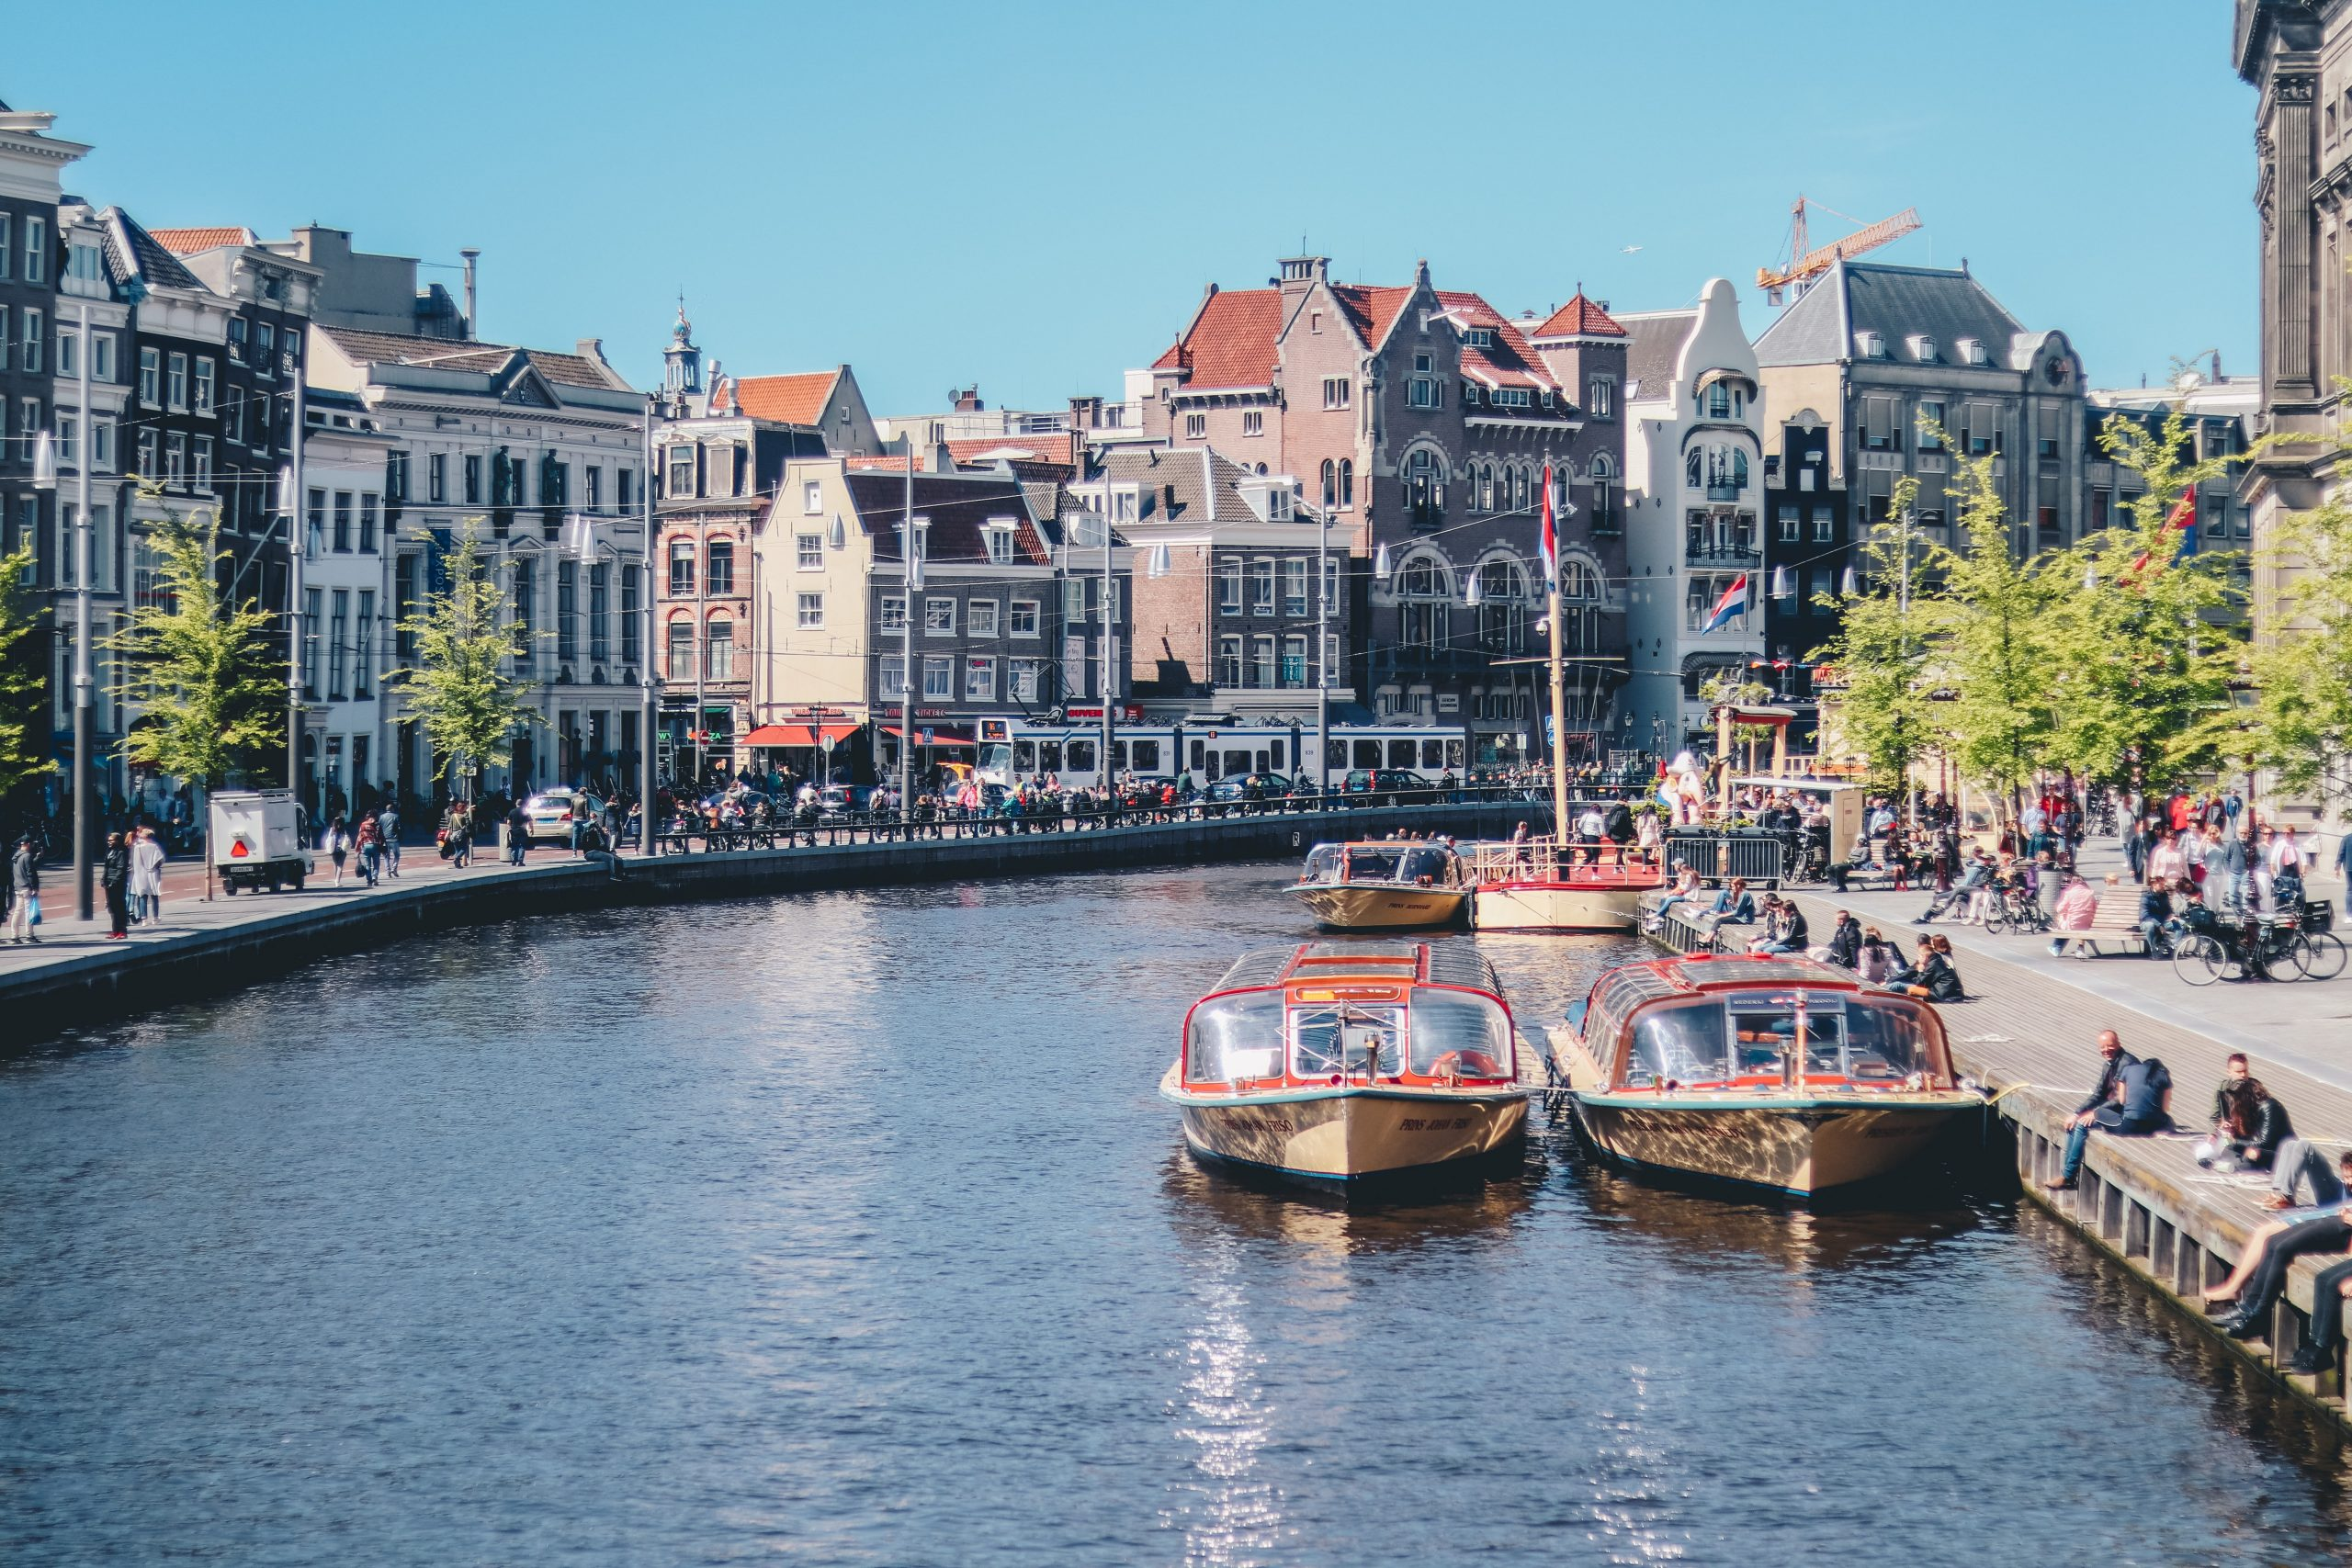 Amsterdam is the first city to implement economic change with the doughnut model